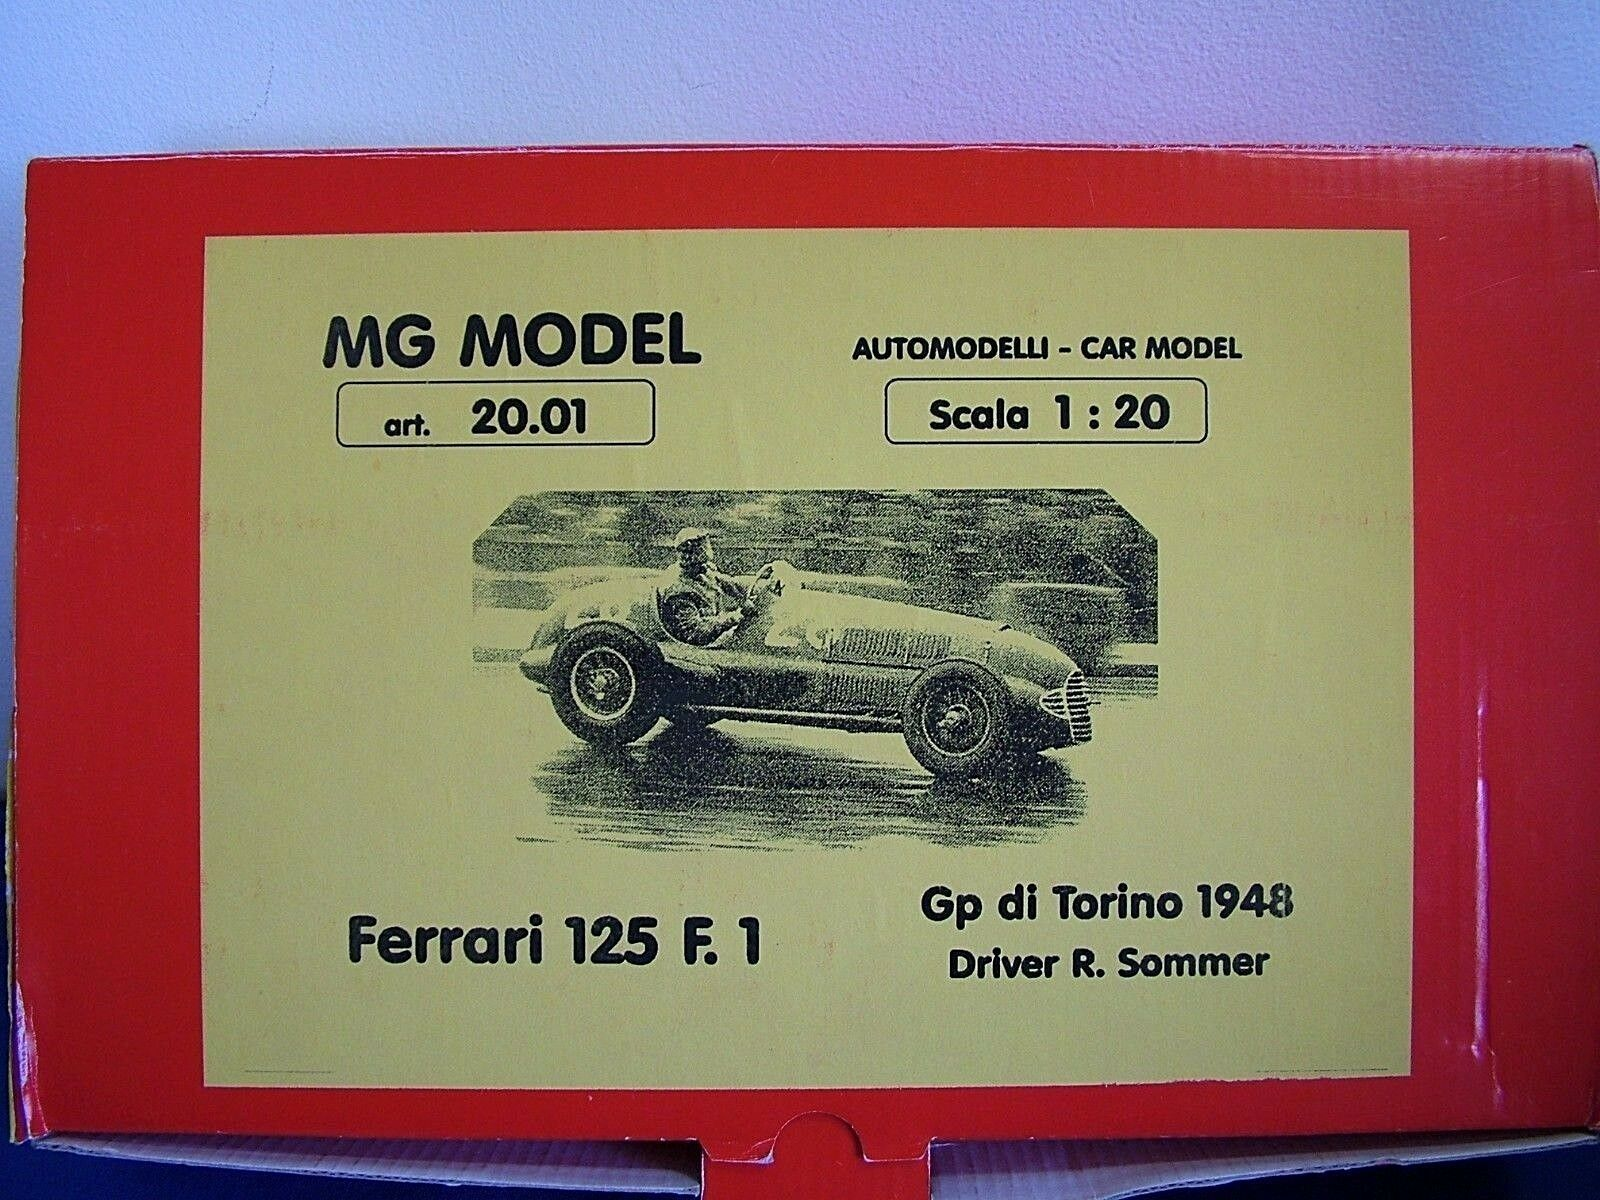 MG modellllerL PLUS 20.01 - 1948 FERRARI 125 F1 20TH skala hkonsts &METAL KIT